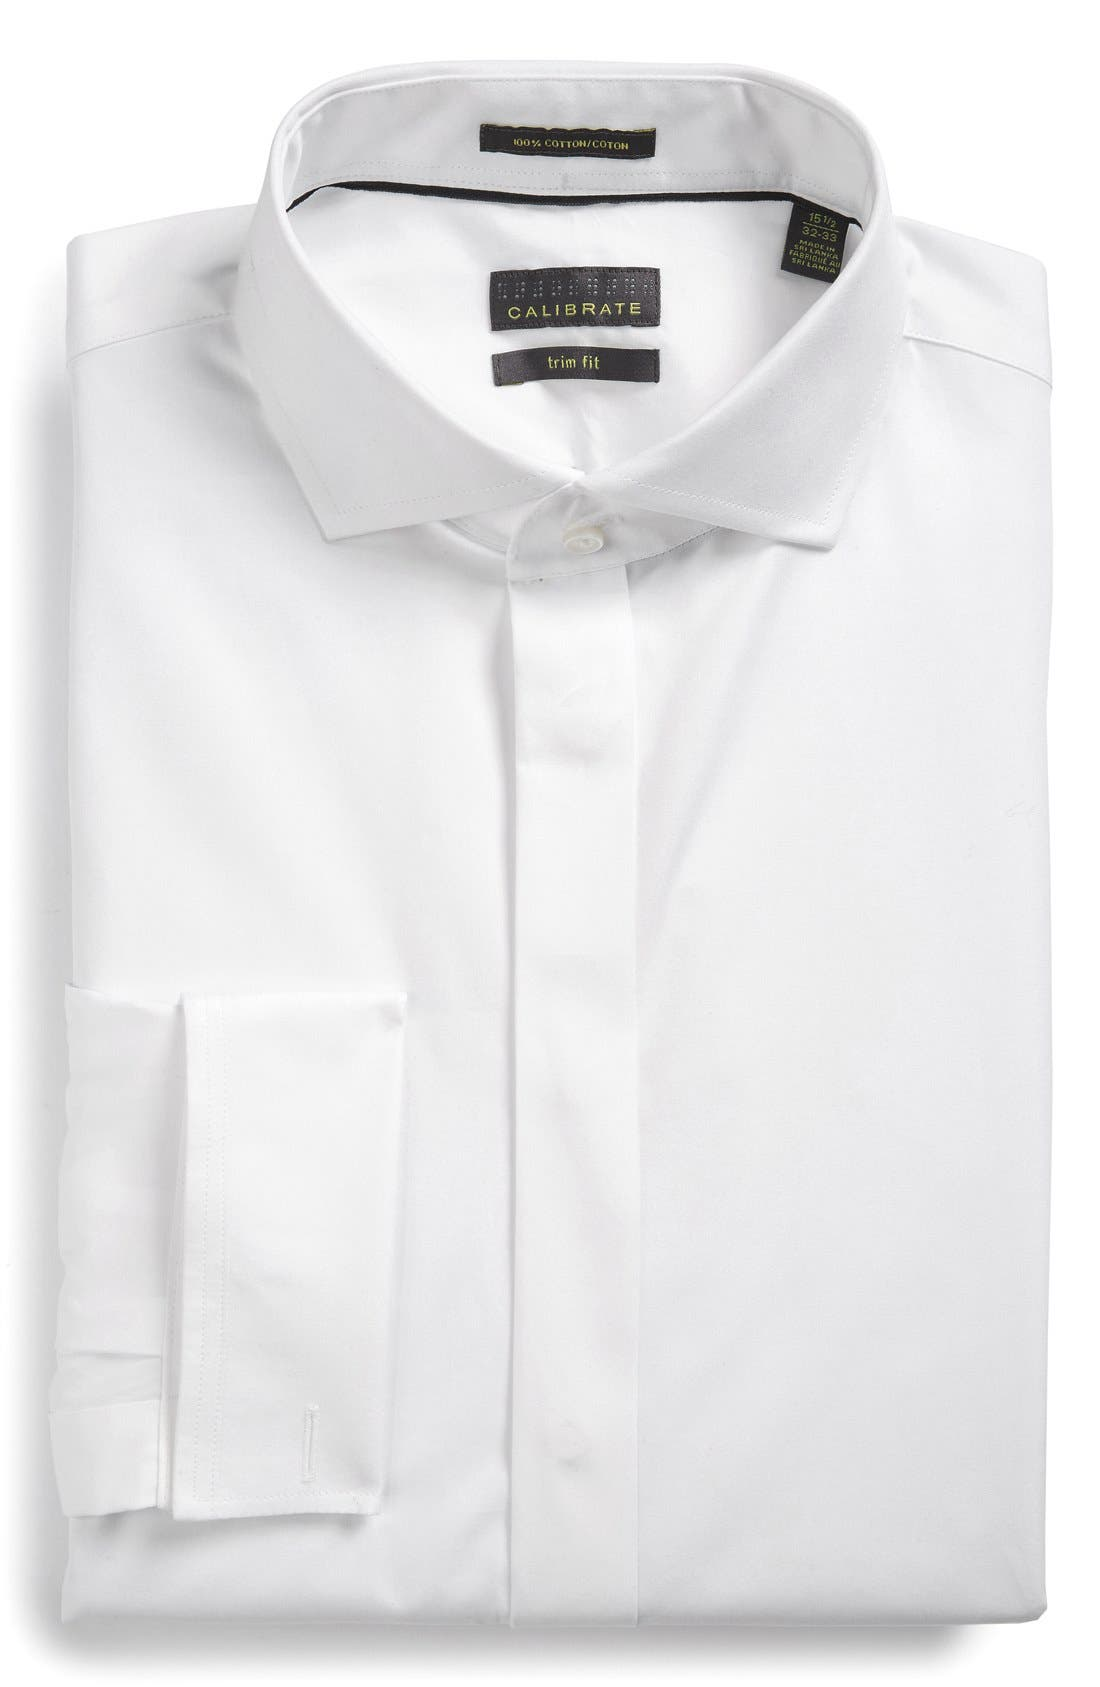 CALIBRATE Trim Fit Solid Tuxedo Shirt